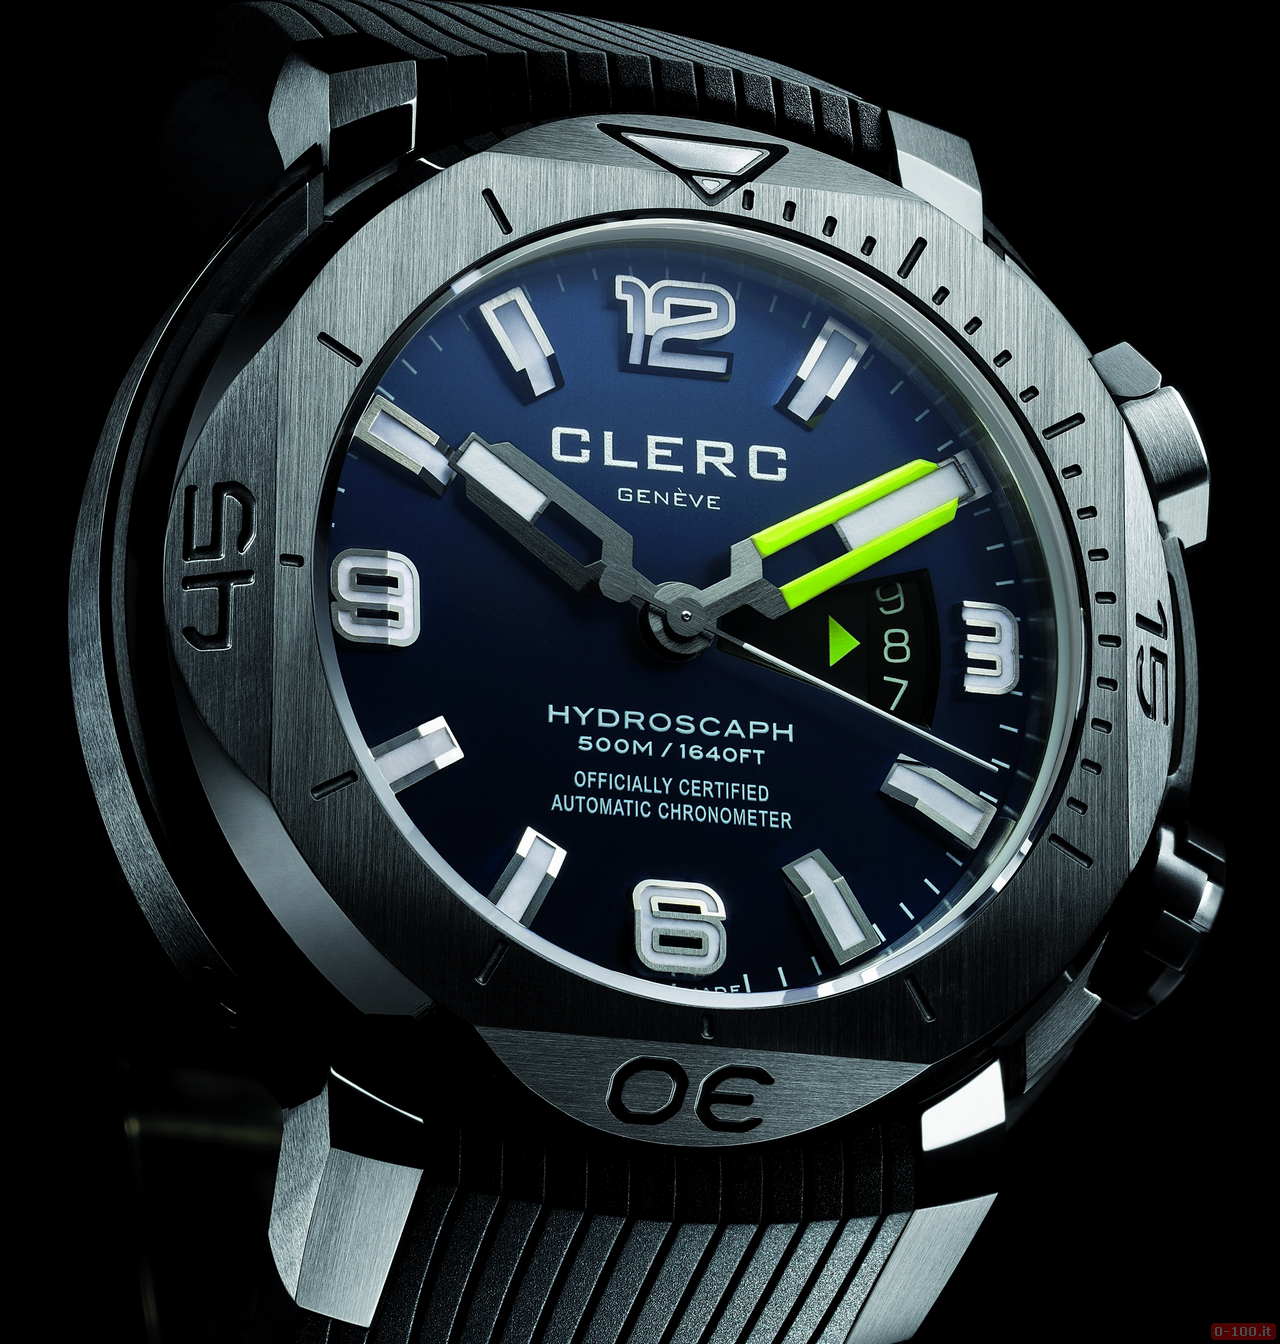 anteprima-baselword-2013-clerc-hydroscaph-h1-chronometer_0-100_4